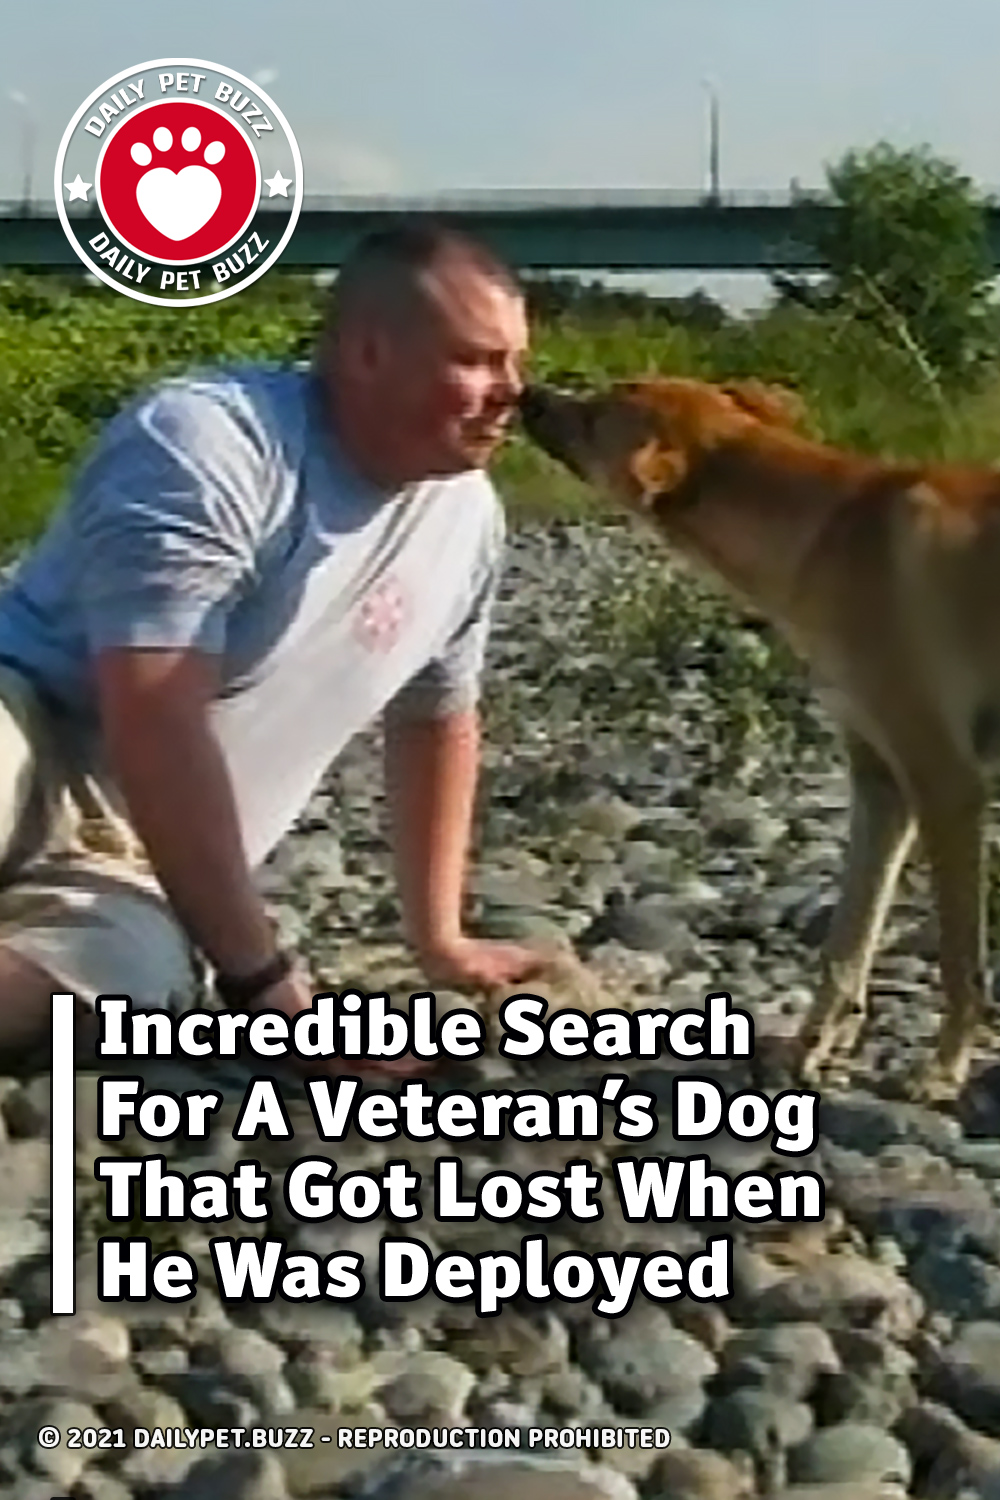 Incredible Search For A Veteran\'s Dog That Got Lost When He Was Deployed